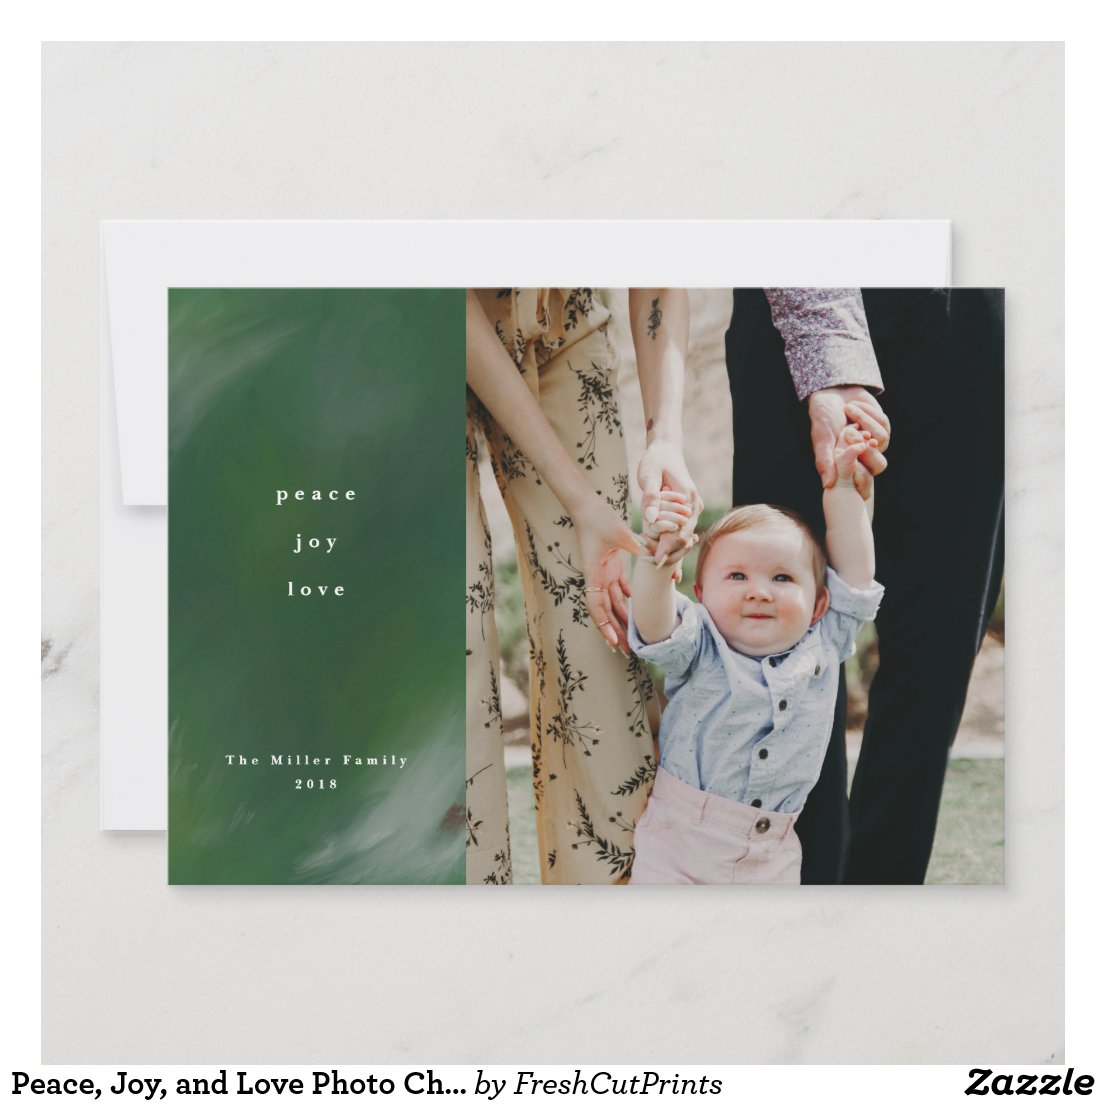 Peace, Joy, and Love Photo Christmas Card